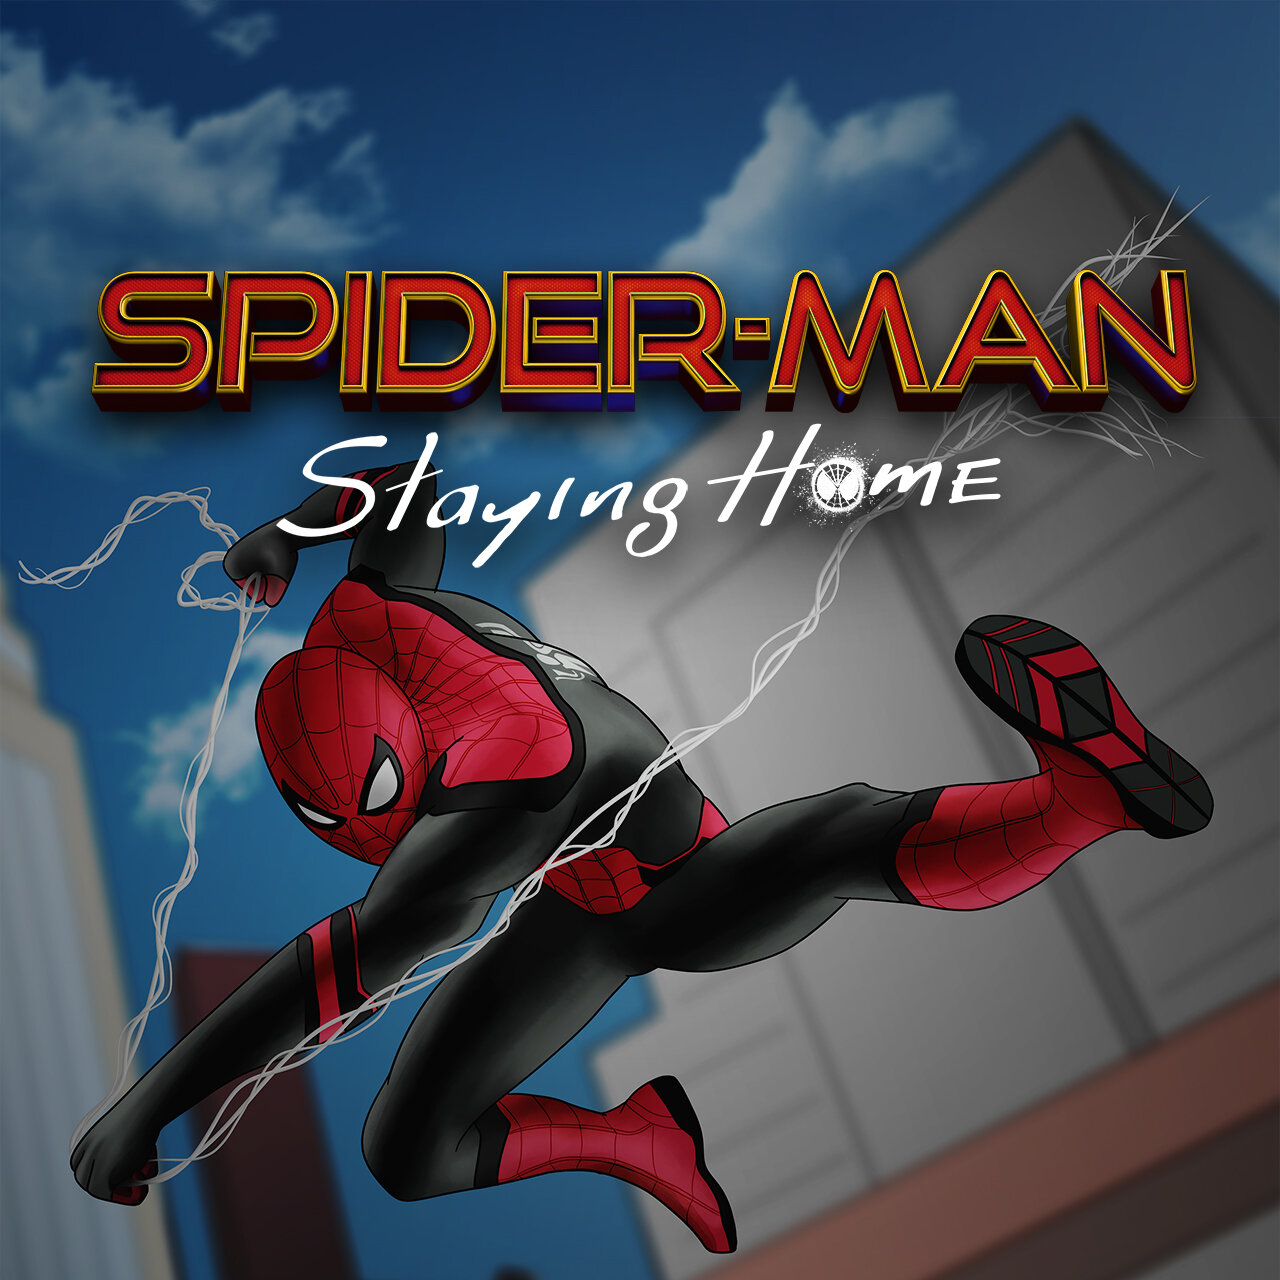 Spider-Man: Staying Home